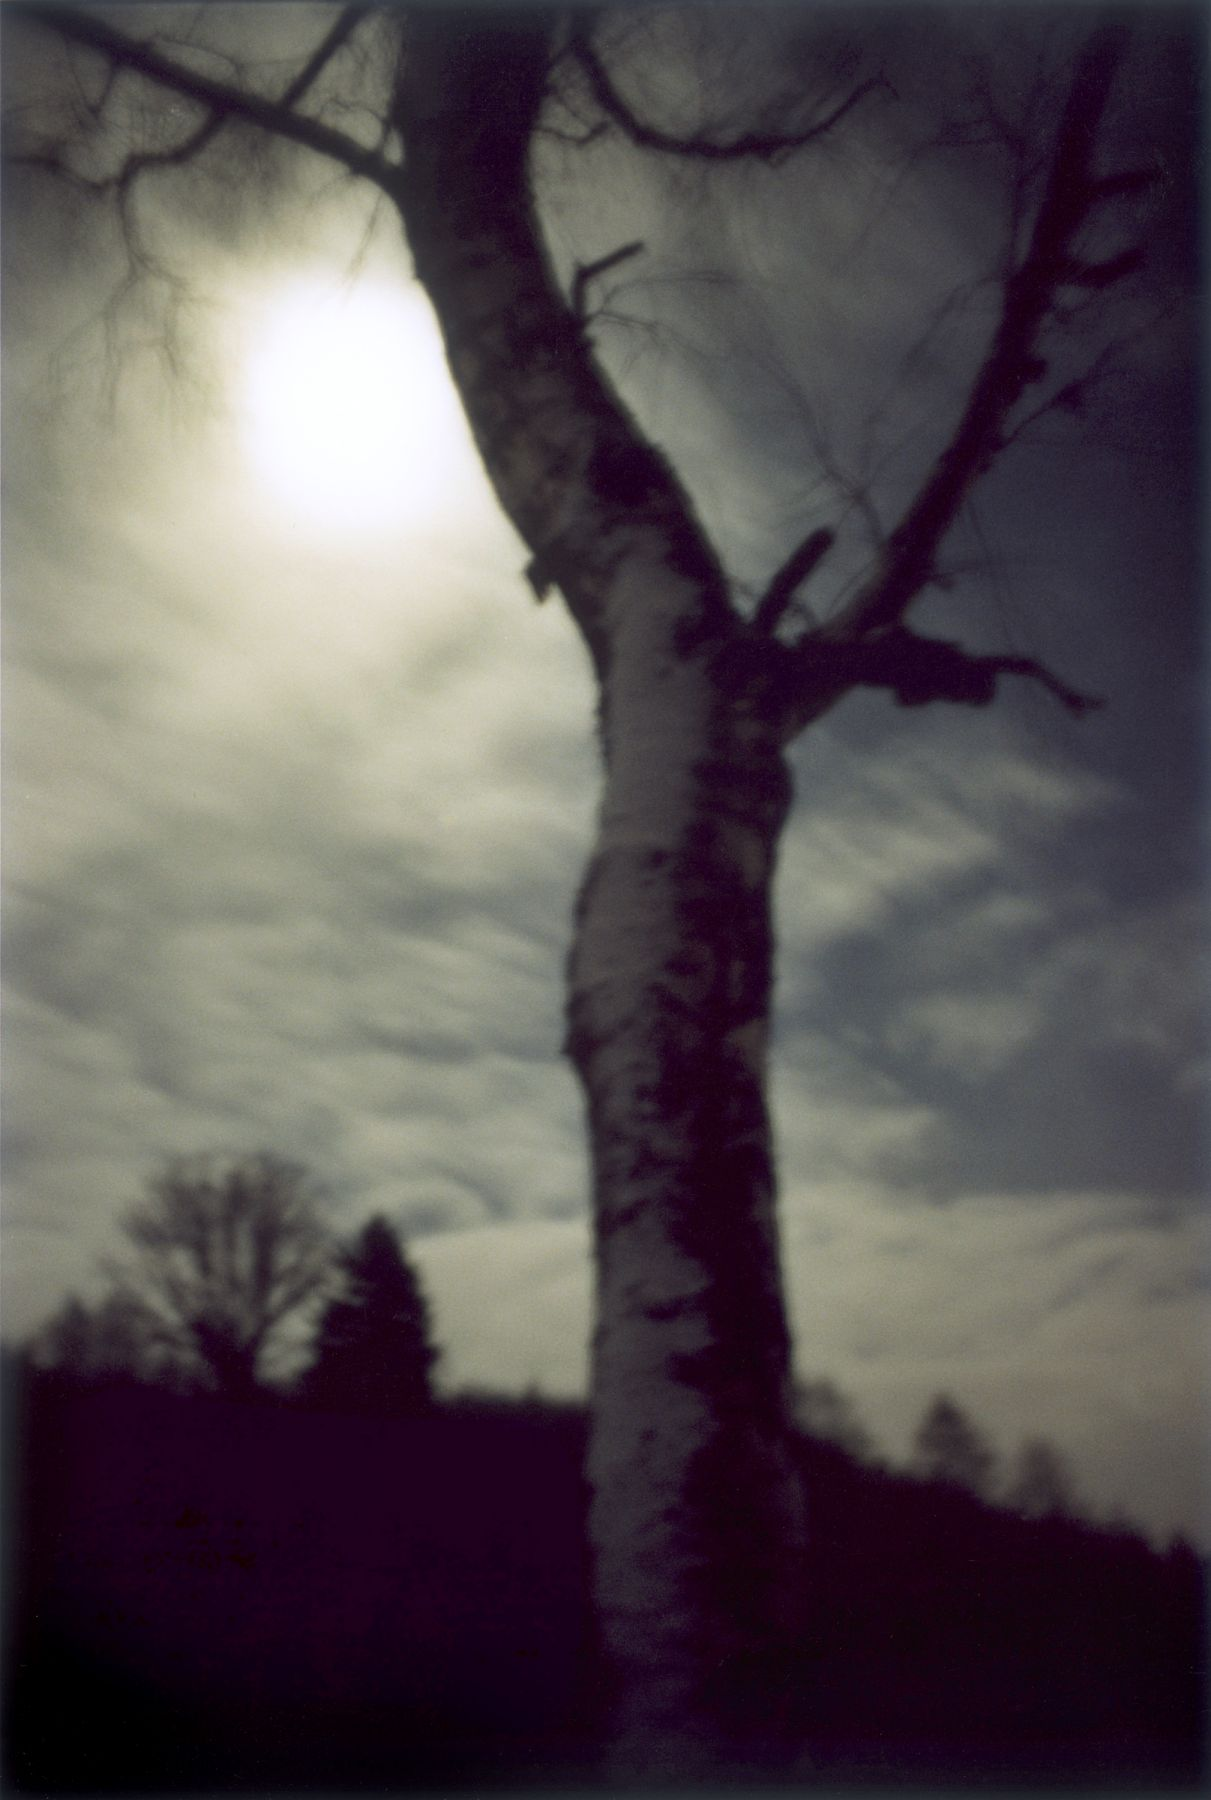 Forest #1, Untitled (Moon Shine), 2000, 10.5 x 7 inch chromogenic print